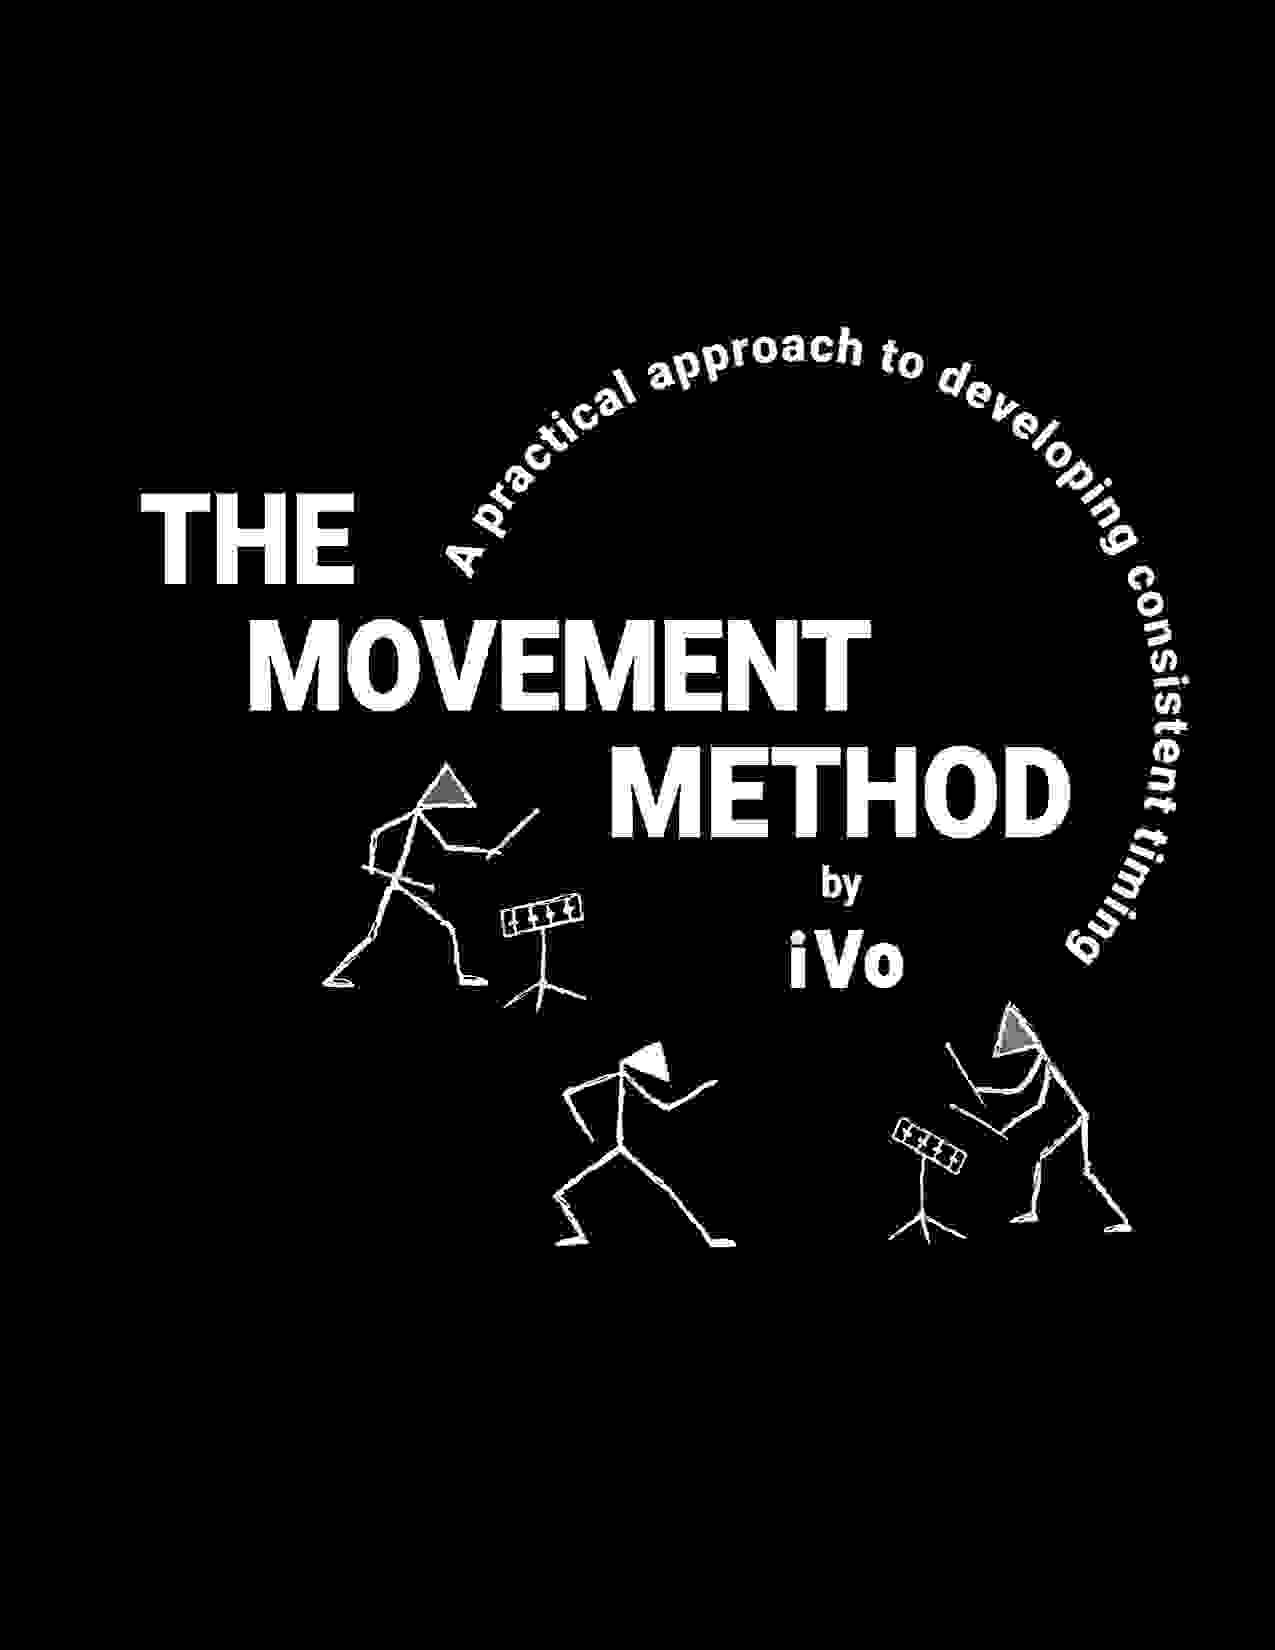 The Movement Method, a drum lessons drum book by iVo